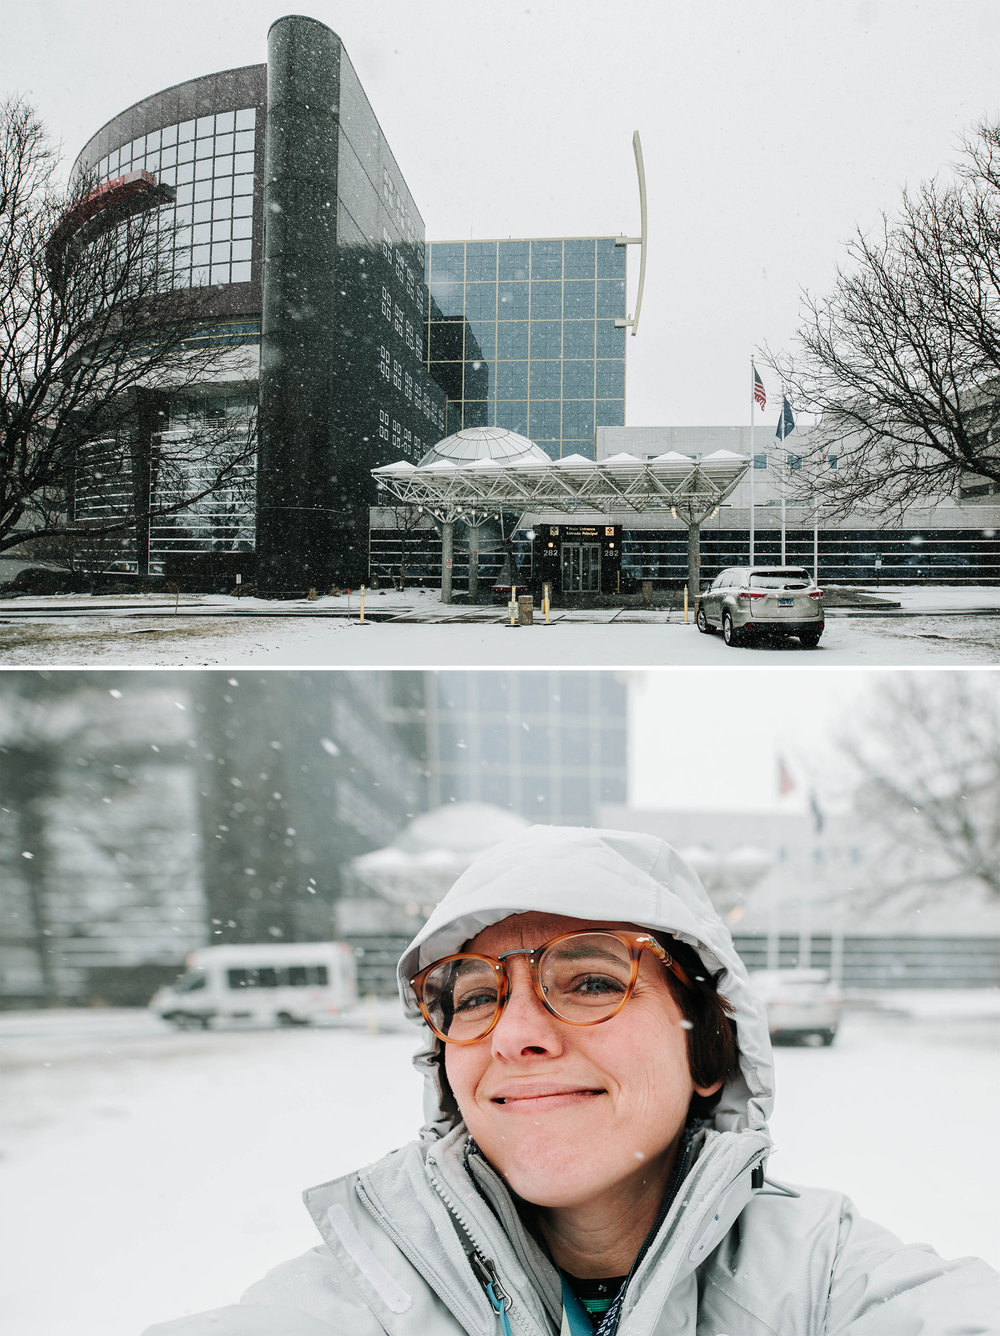 February 7: Snow day seen from the medical center... and a selfie.